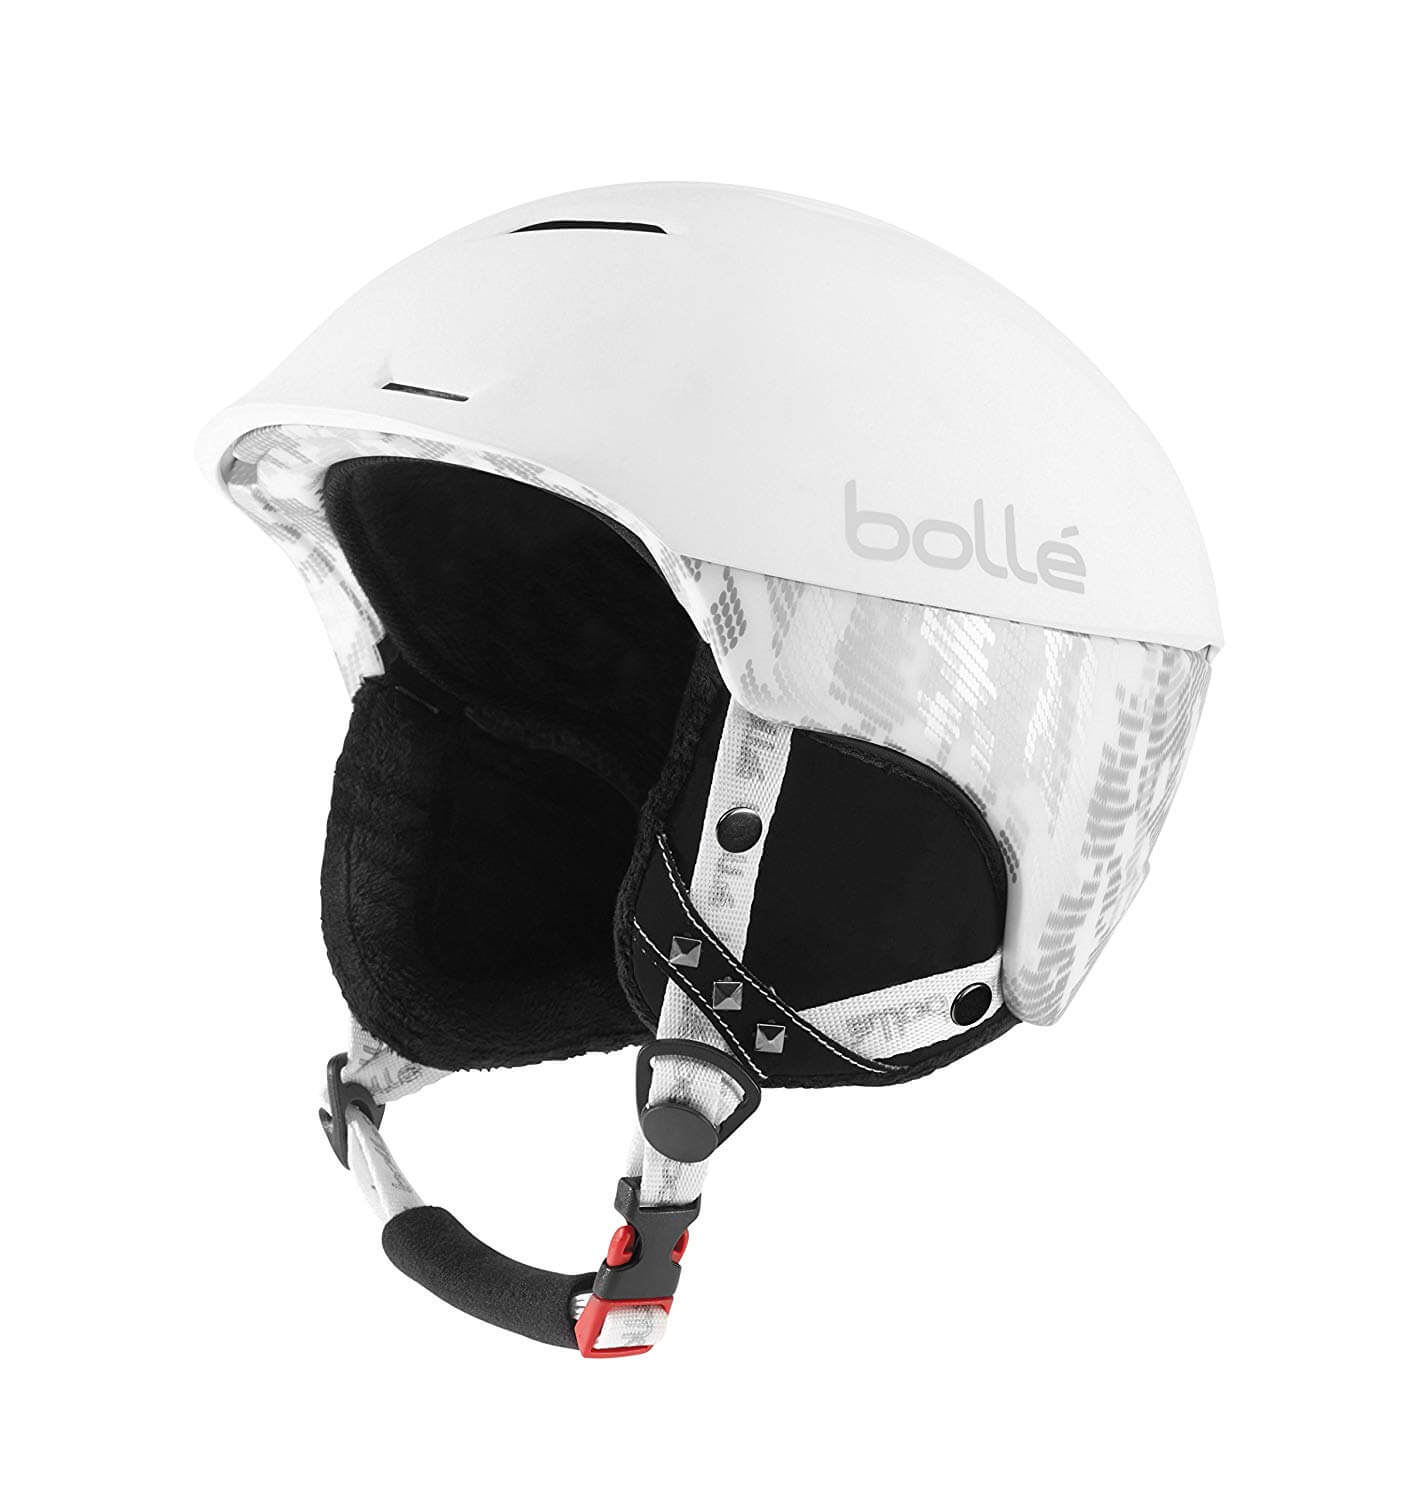 Top 10 Best Ski Helmets-2